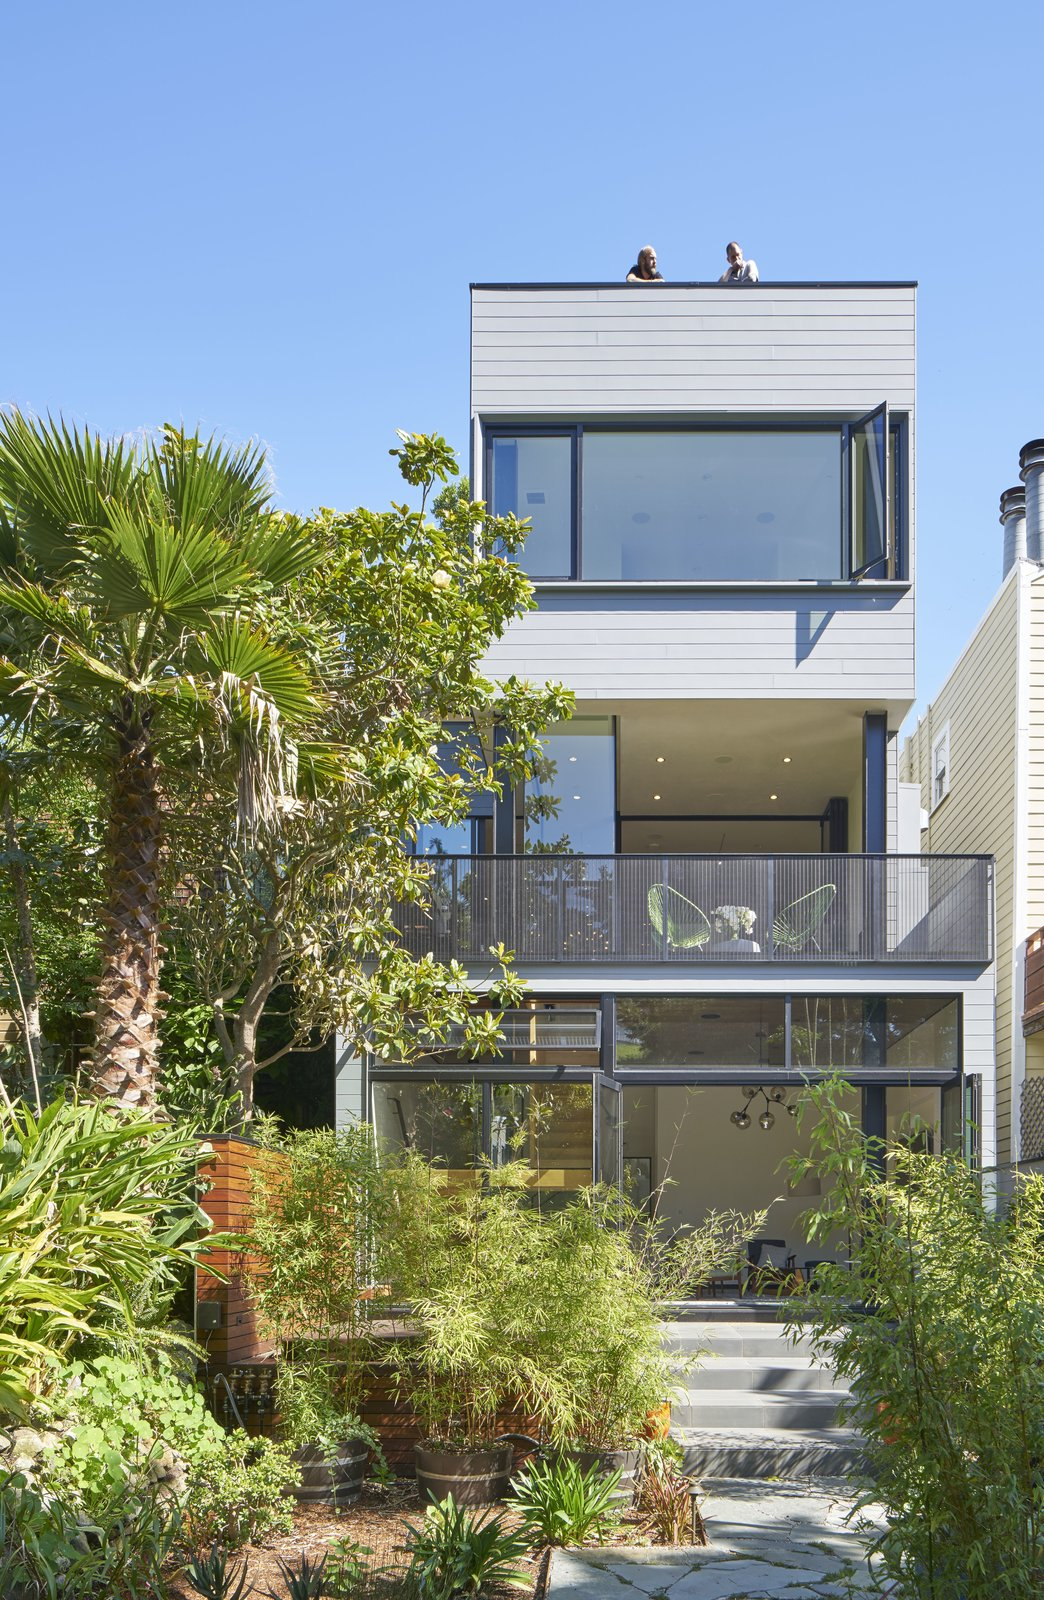 Outdoor, Shrubs, Trees, Raised Planters, and Small Patio, Porch, Deck  29th Street Residence by Schwartz and Architecture